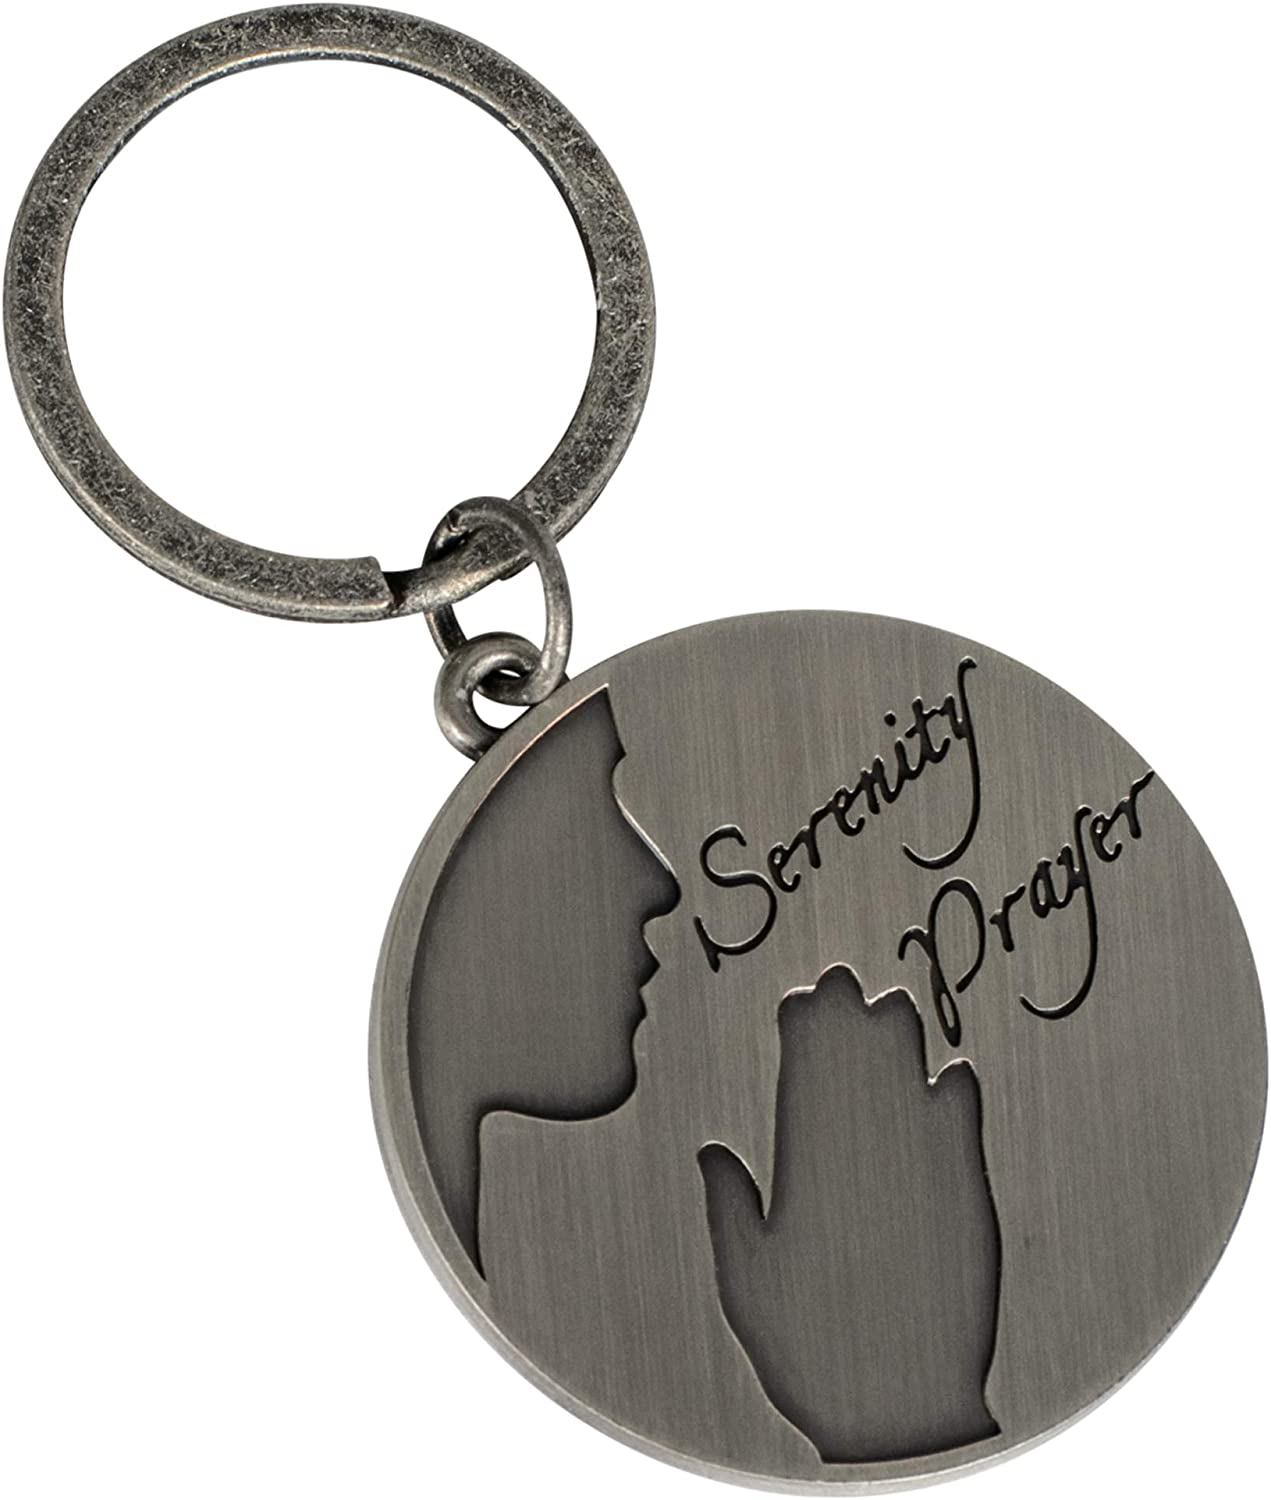 The Serenity Prayer Pendant Necklace or Key Chain  Inspirational Motivational Gift